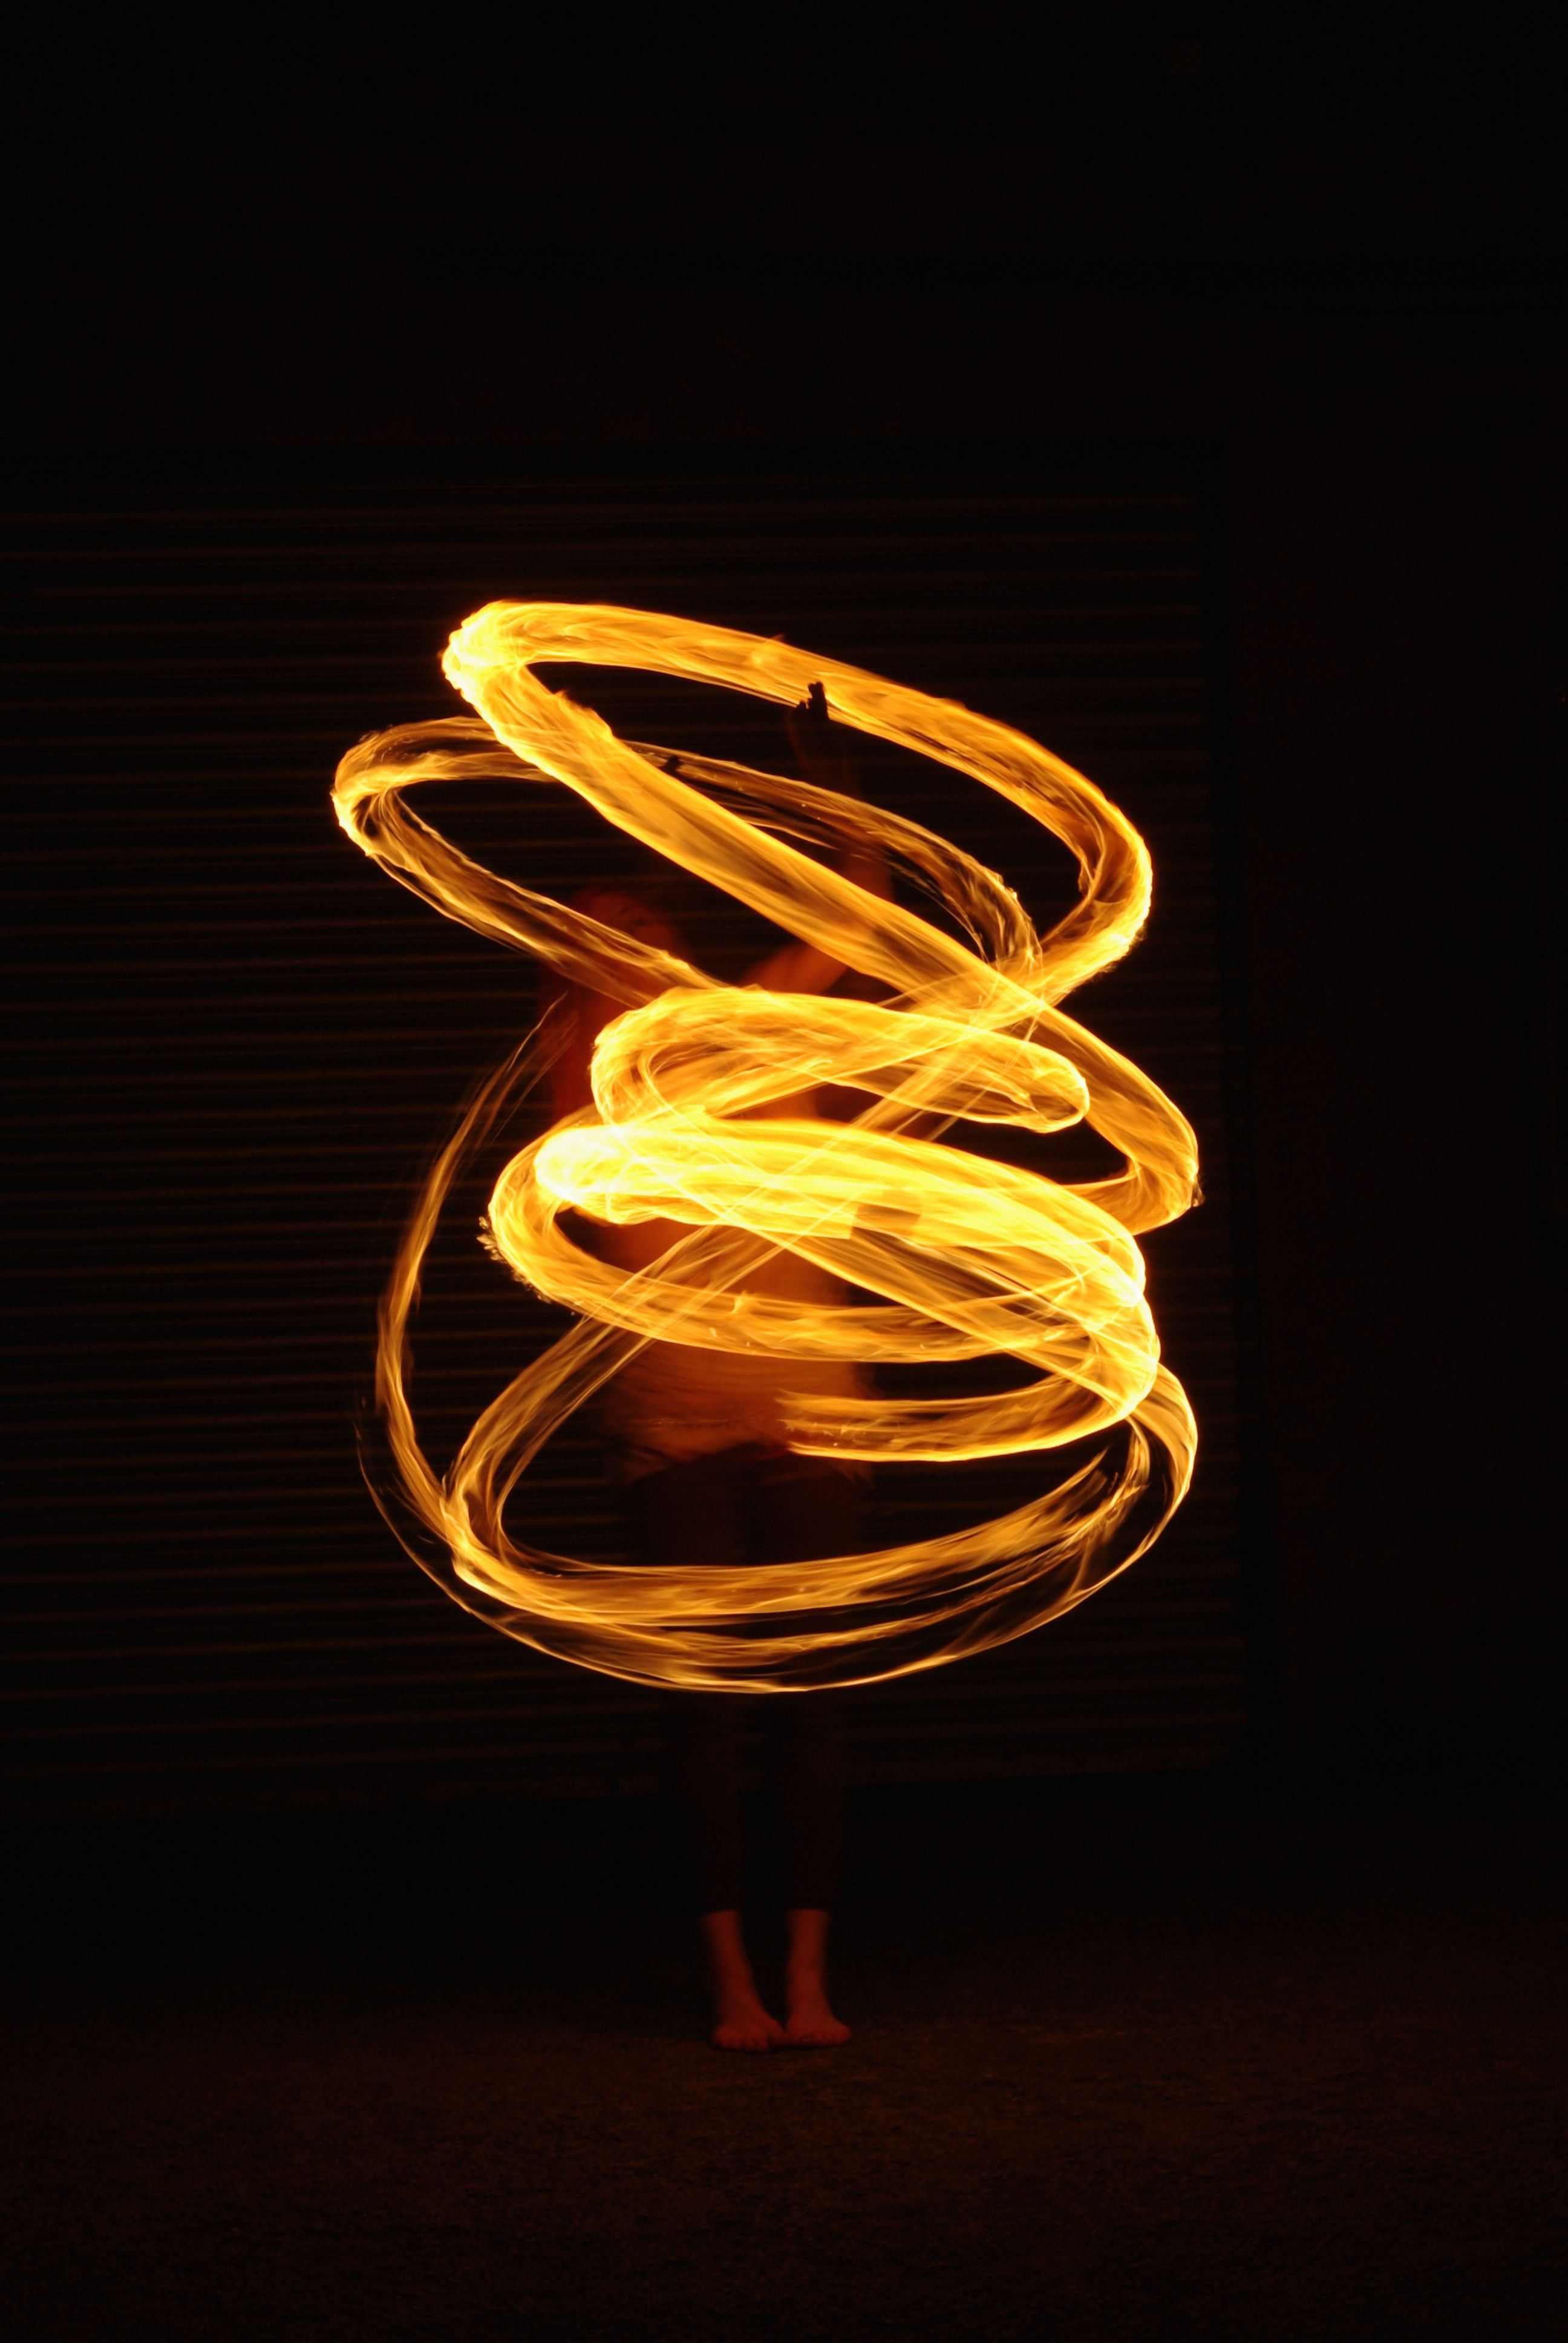 Holiday Lights In Abstract Slow Shutter >> Model With Fire Poi Slow Shutter Speed Elements Light Liquid